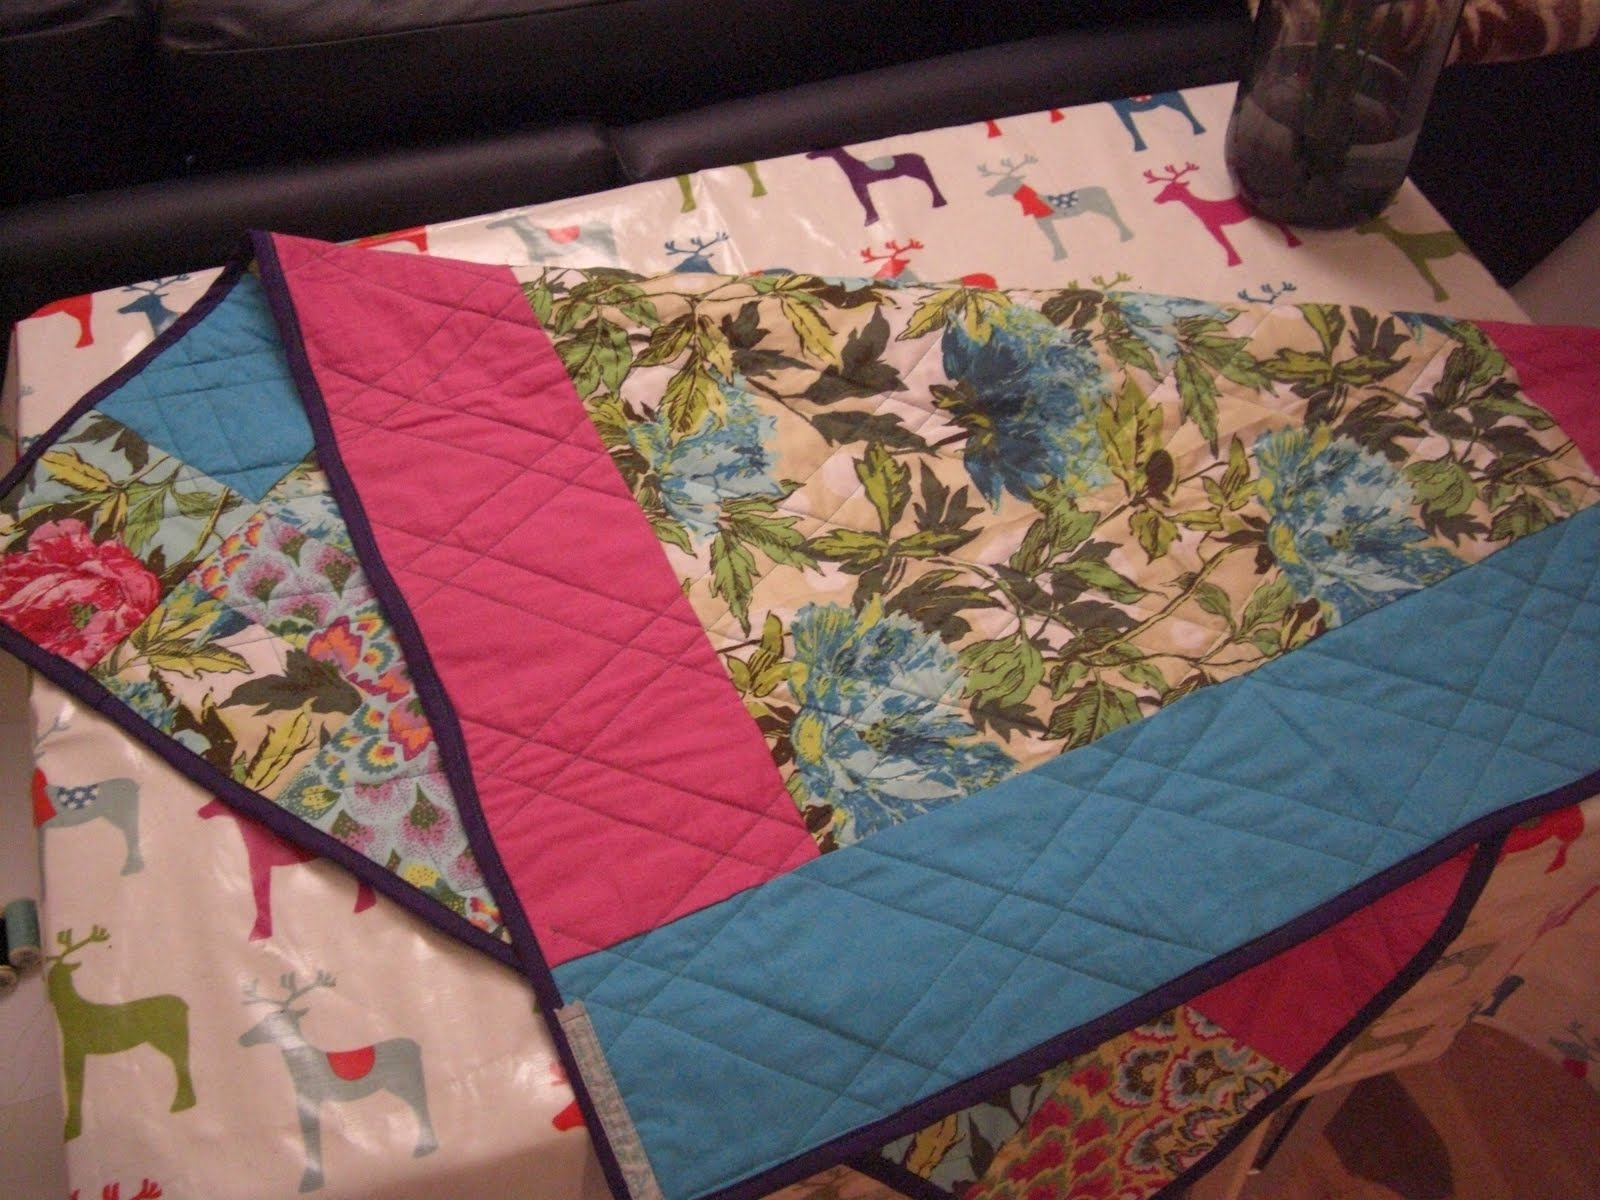 Ripped Up & ReSewn: Christmas Gifts 3 - Quilted Patchwork Blanket